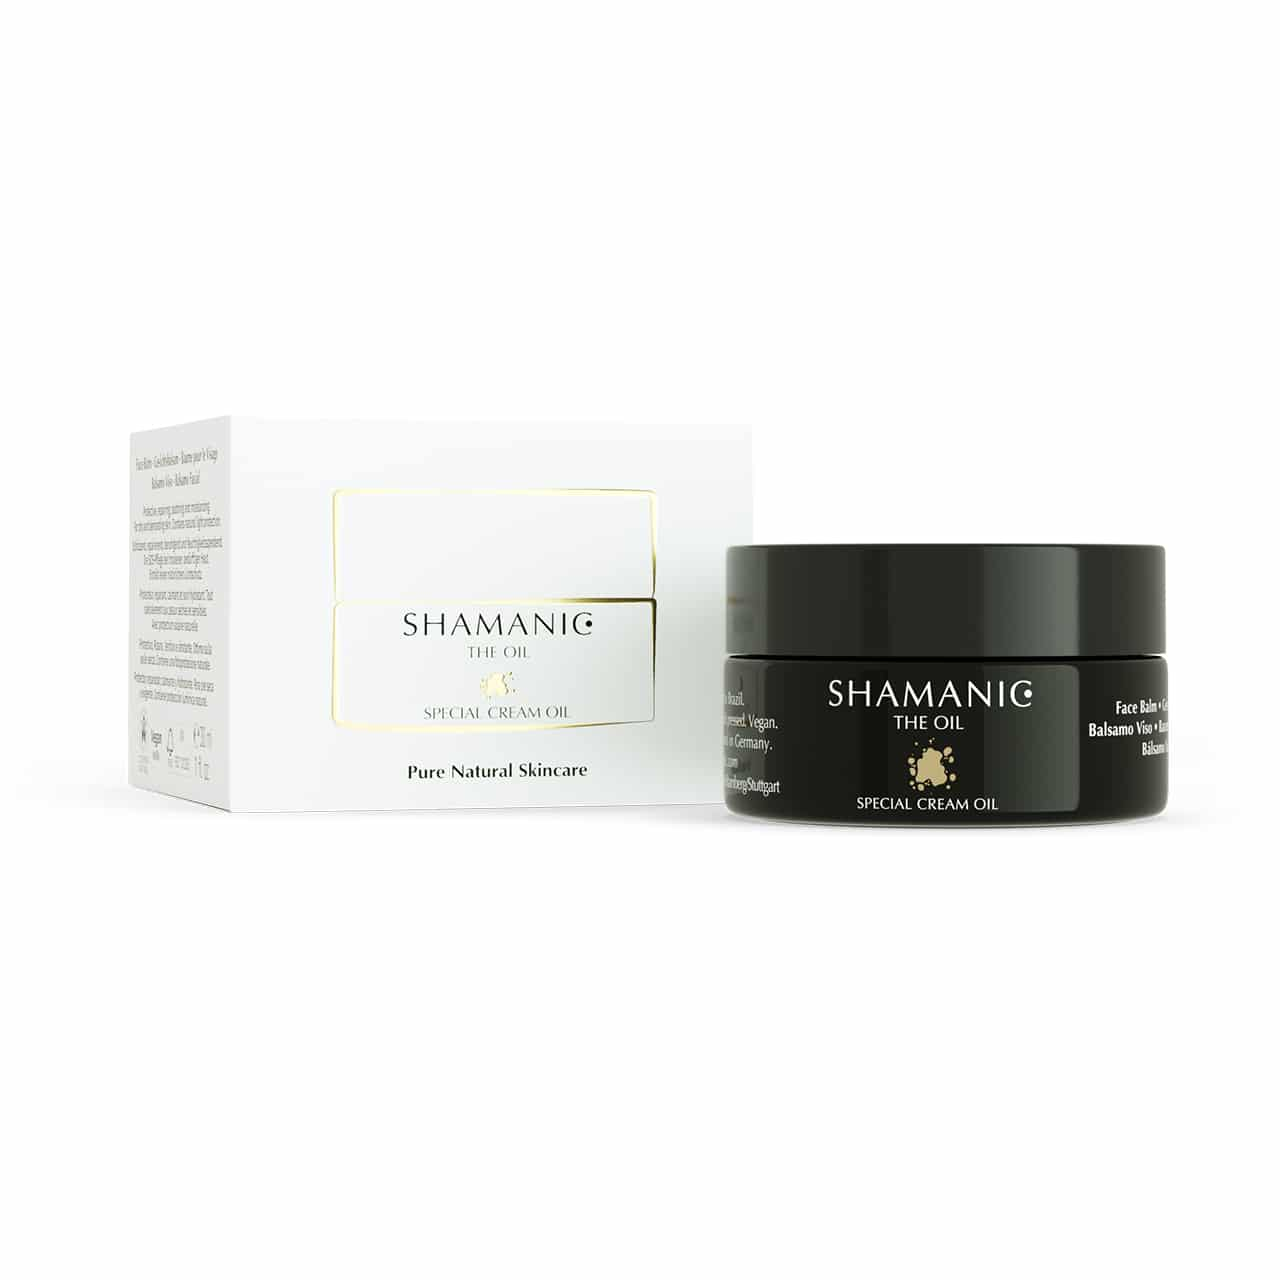 shamanic special cream oil